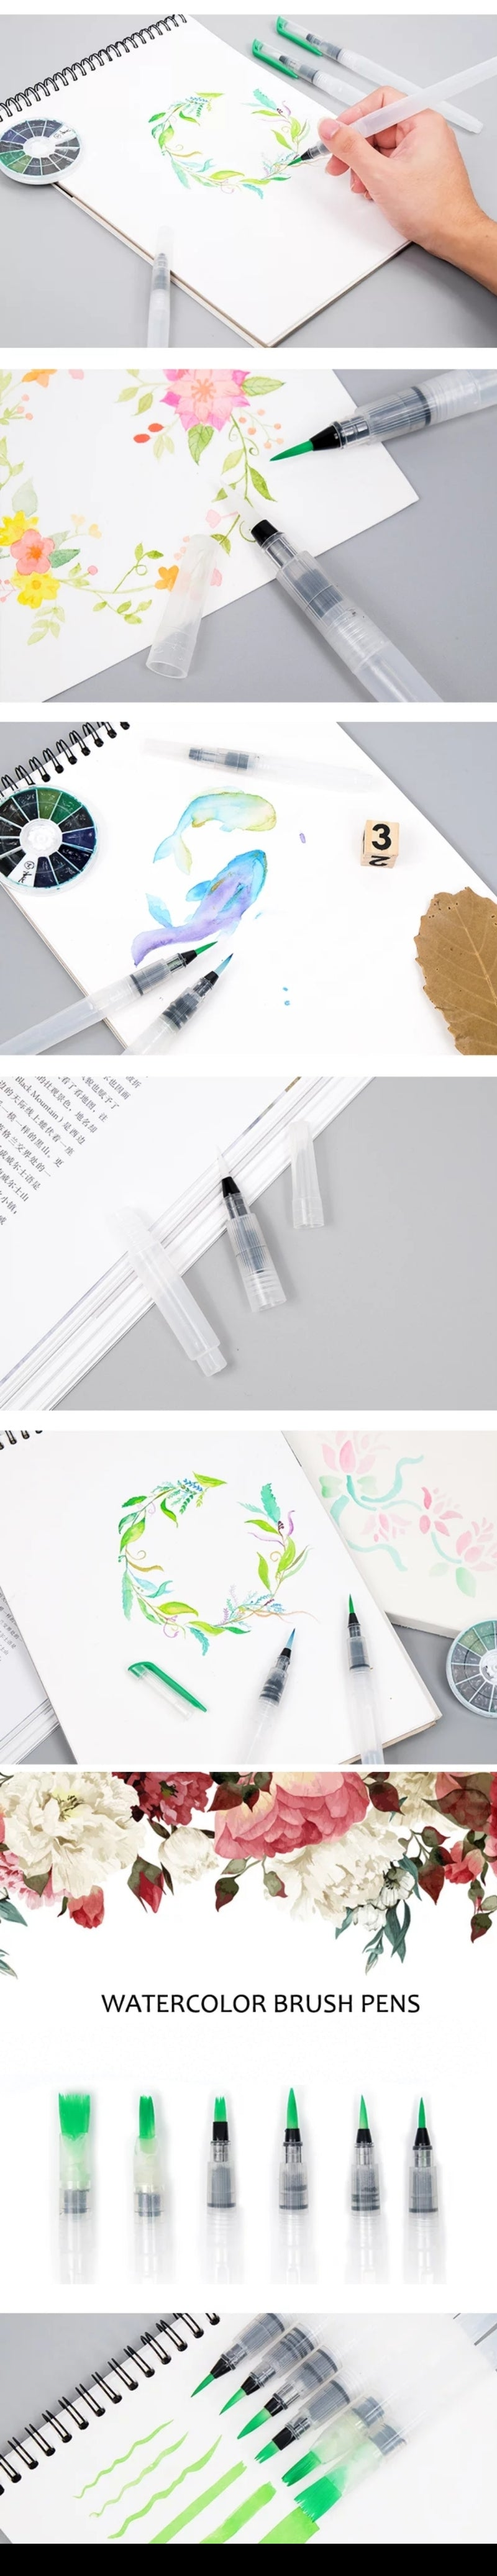 Refillable Watercolor Brush Pen Set - Otrio Stationery